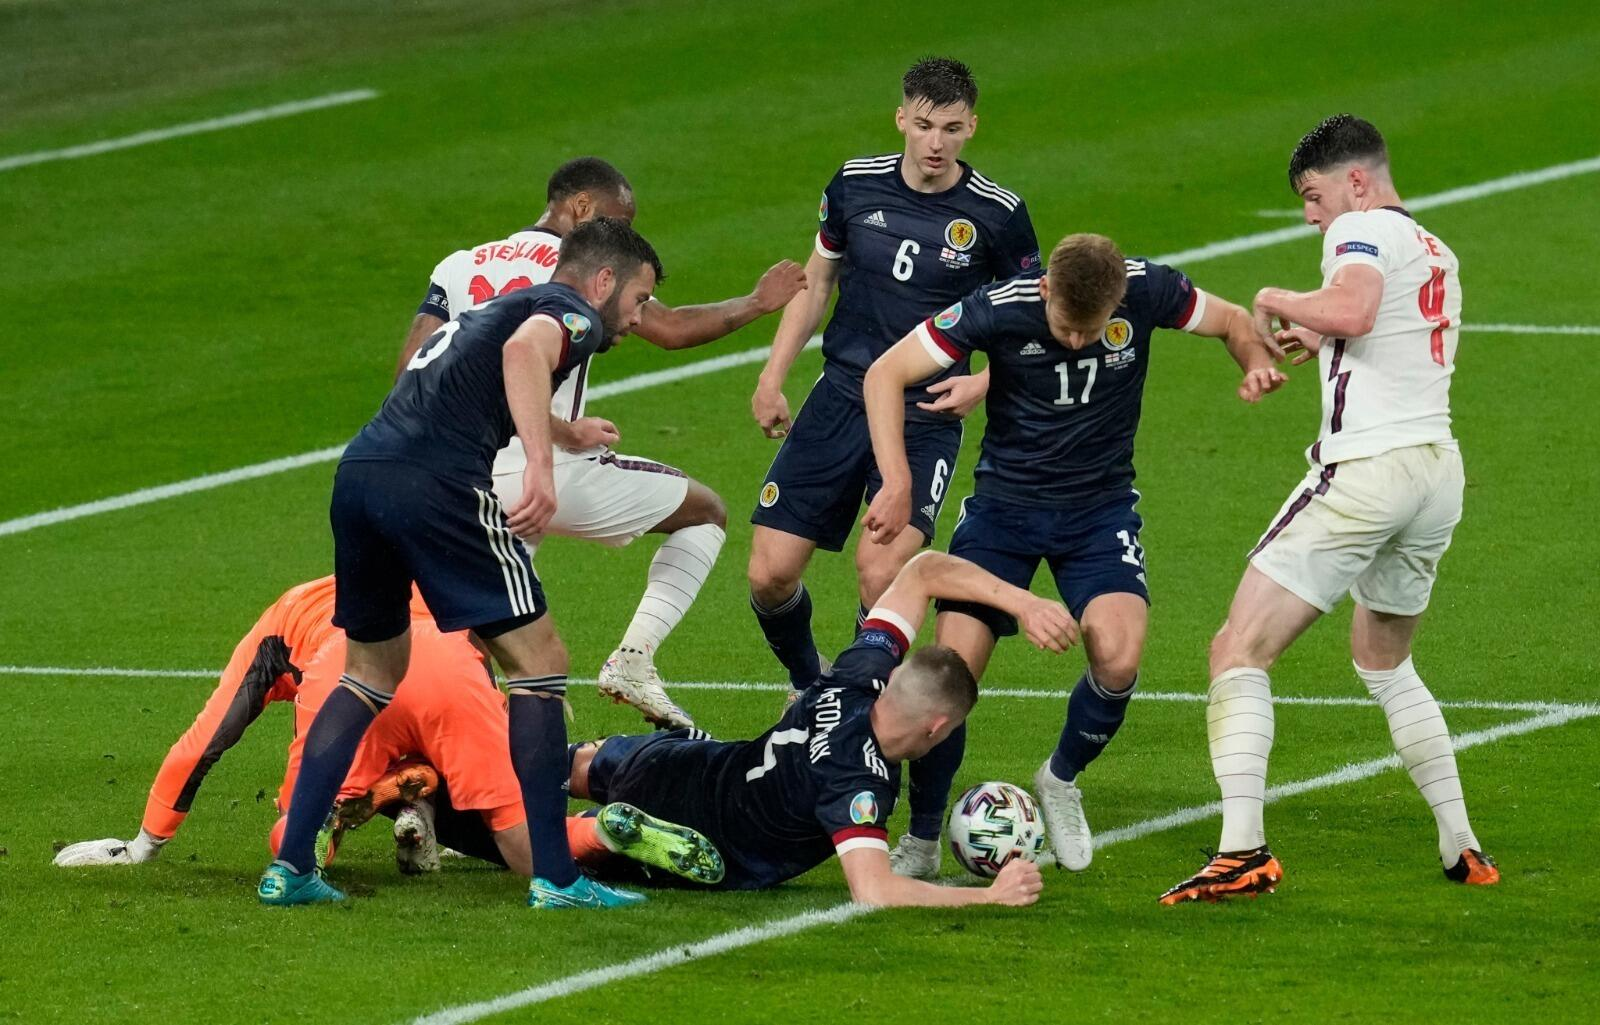 8: Wembley stalemate & Germany prepare for Portugal